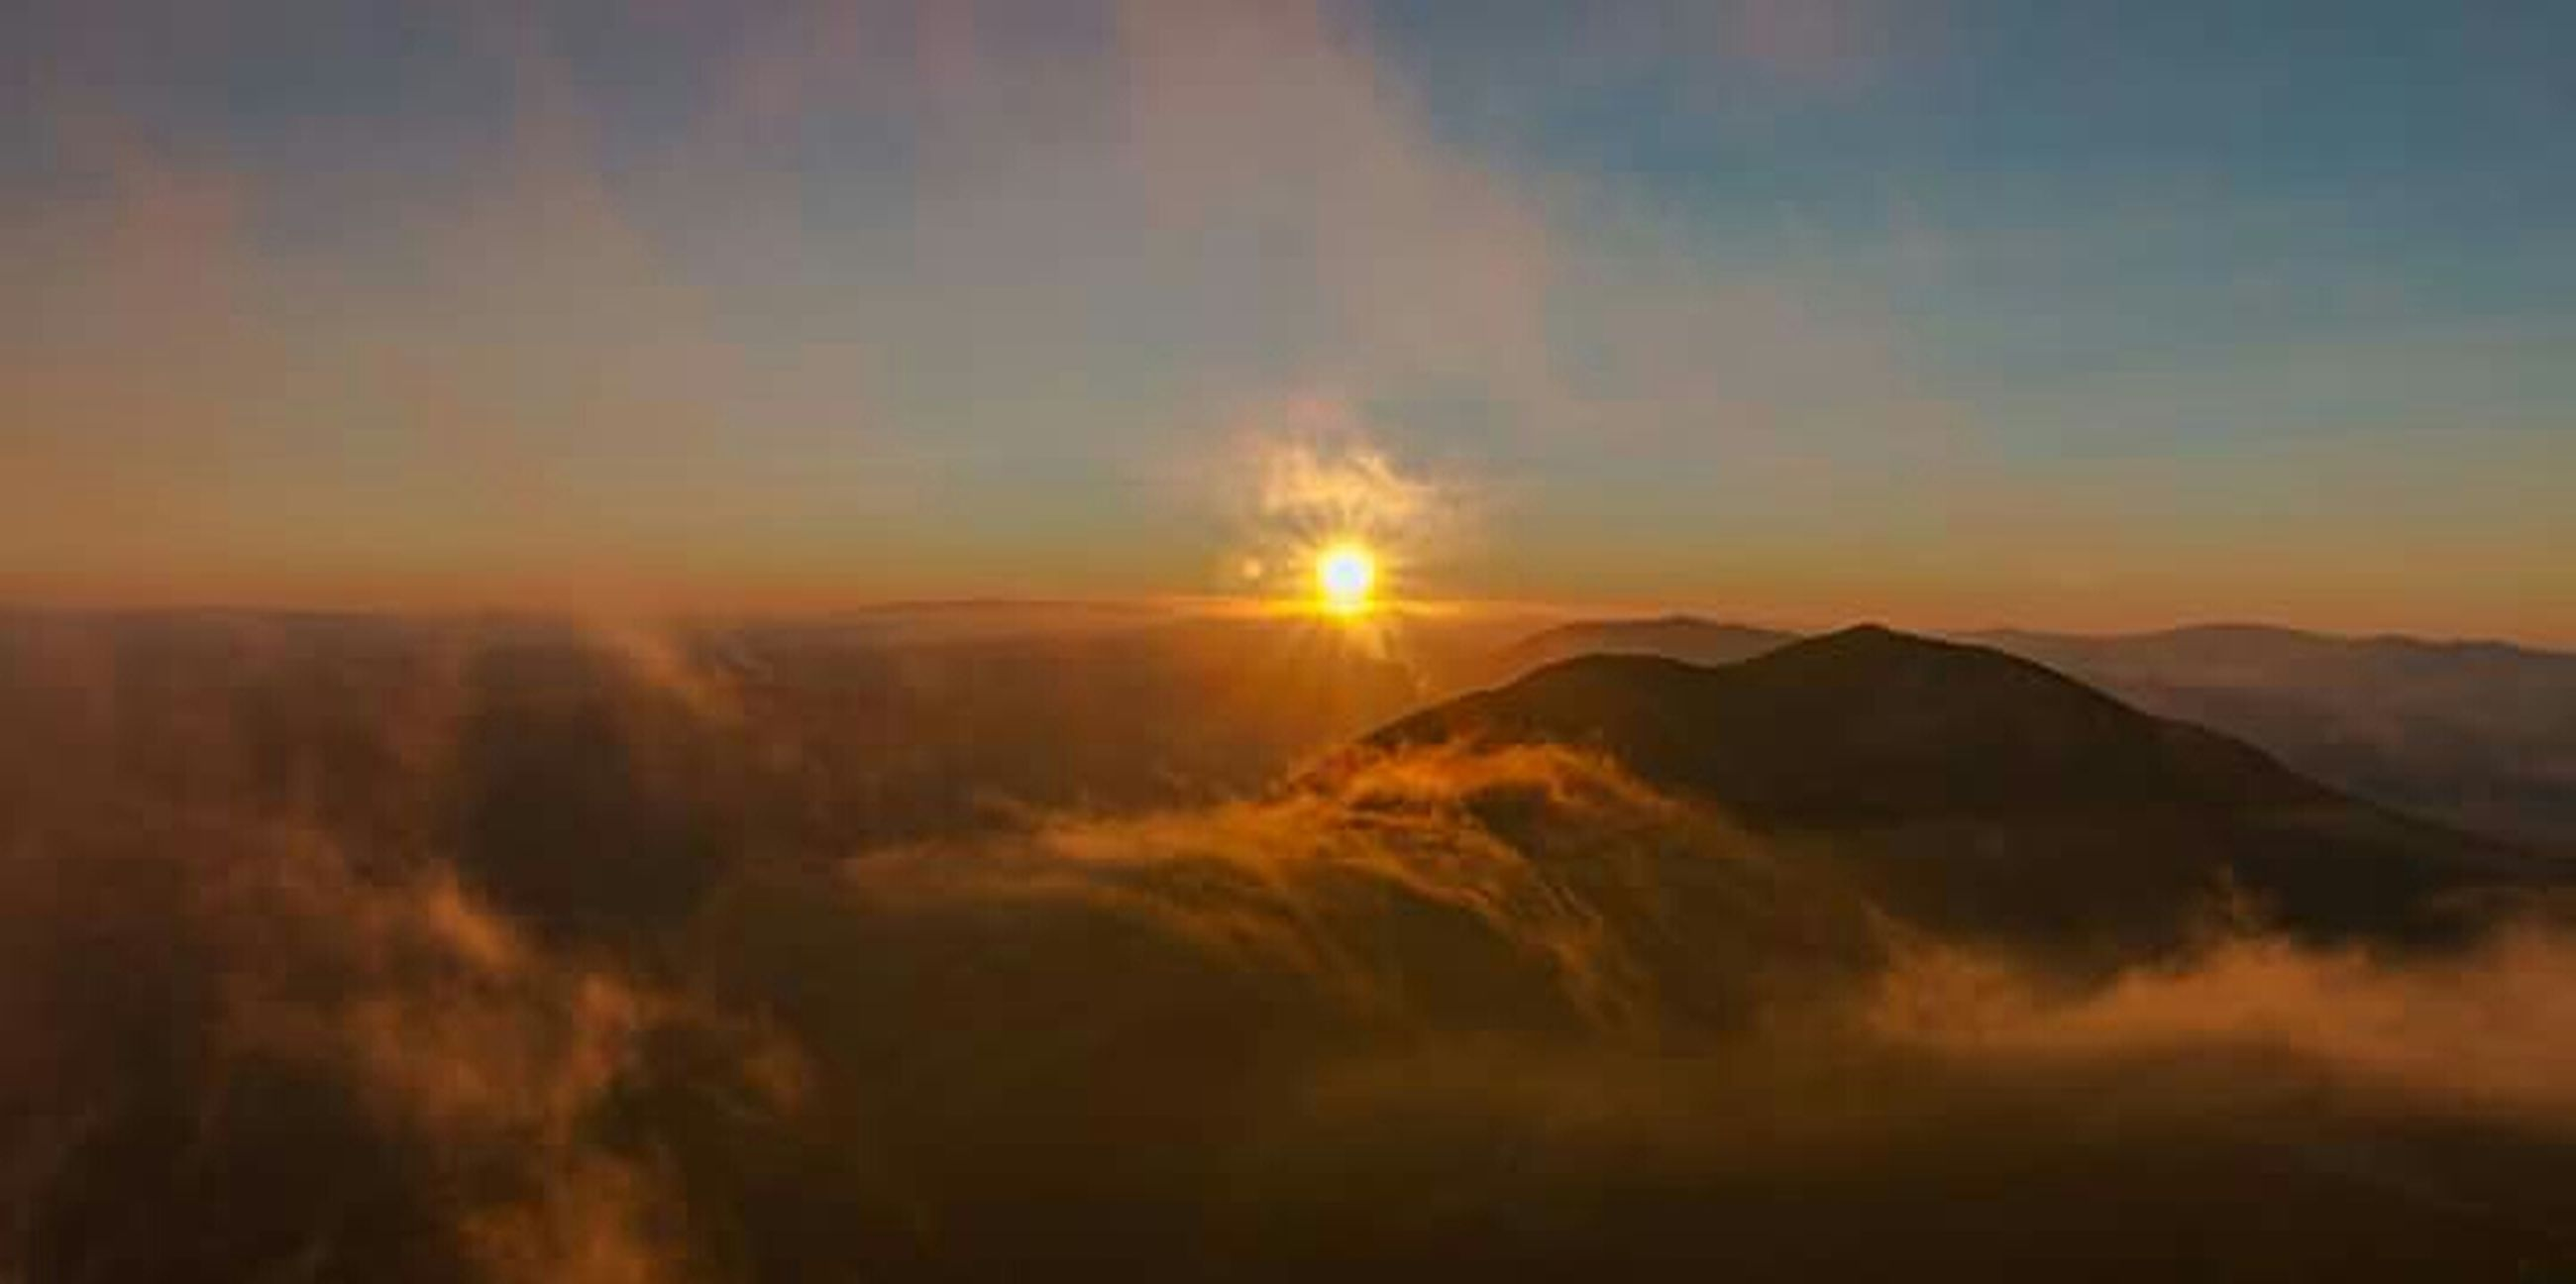 scenics, mountain, nature, mountain range, landscape, beauty in nature, outdoors, sky, sunset, cloud - sky, smoke - physical structure, no people, night, erupting, astronomy